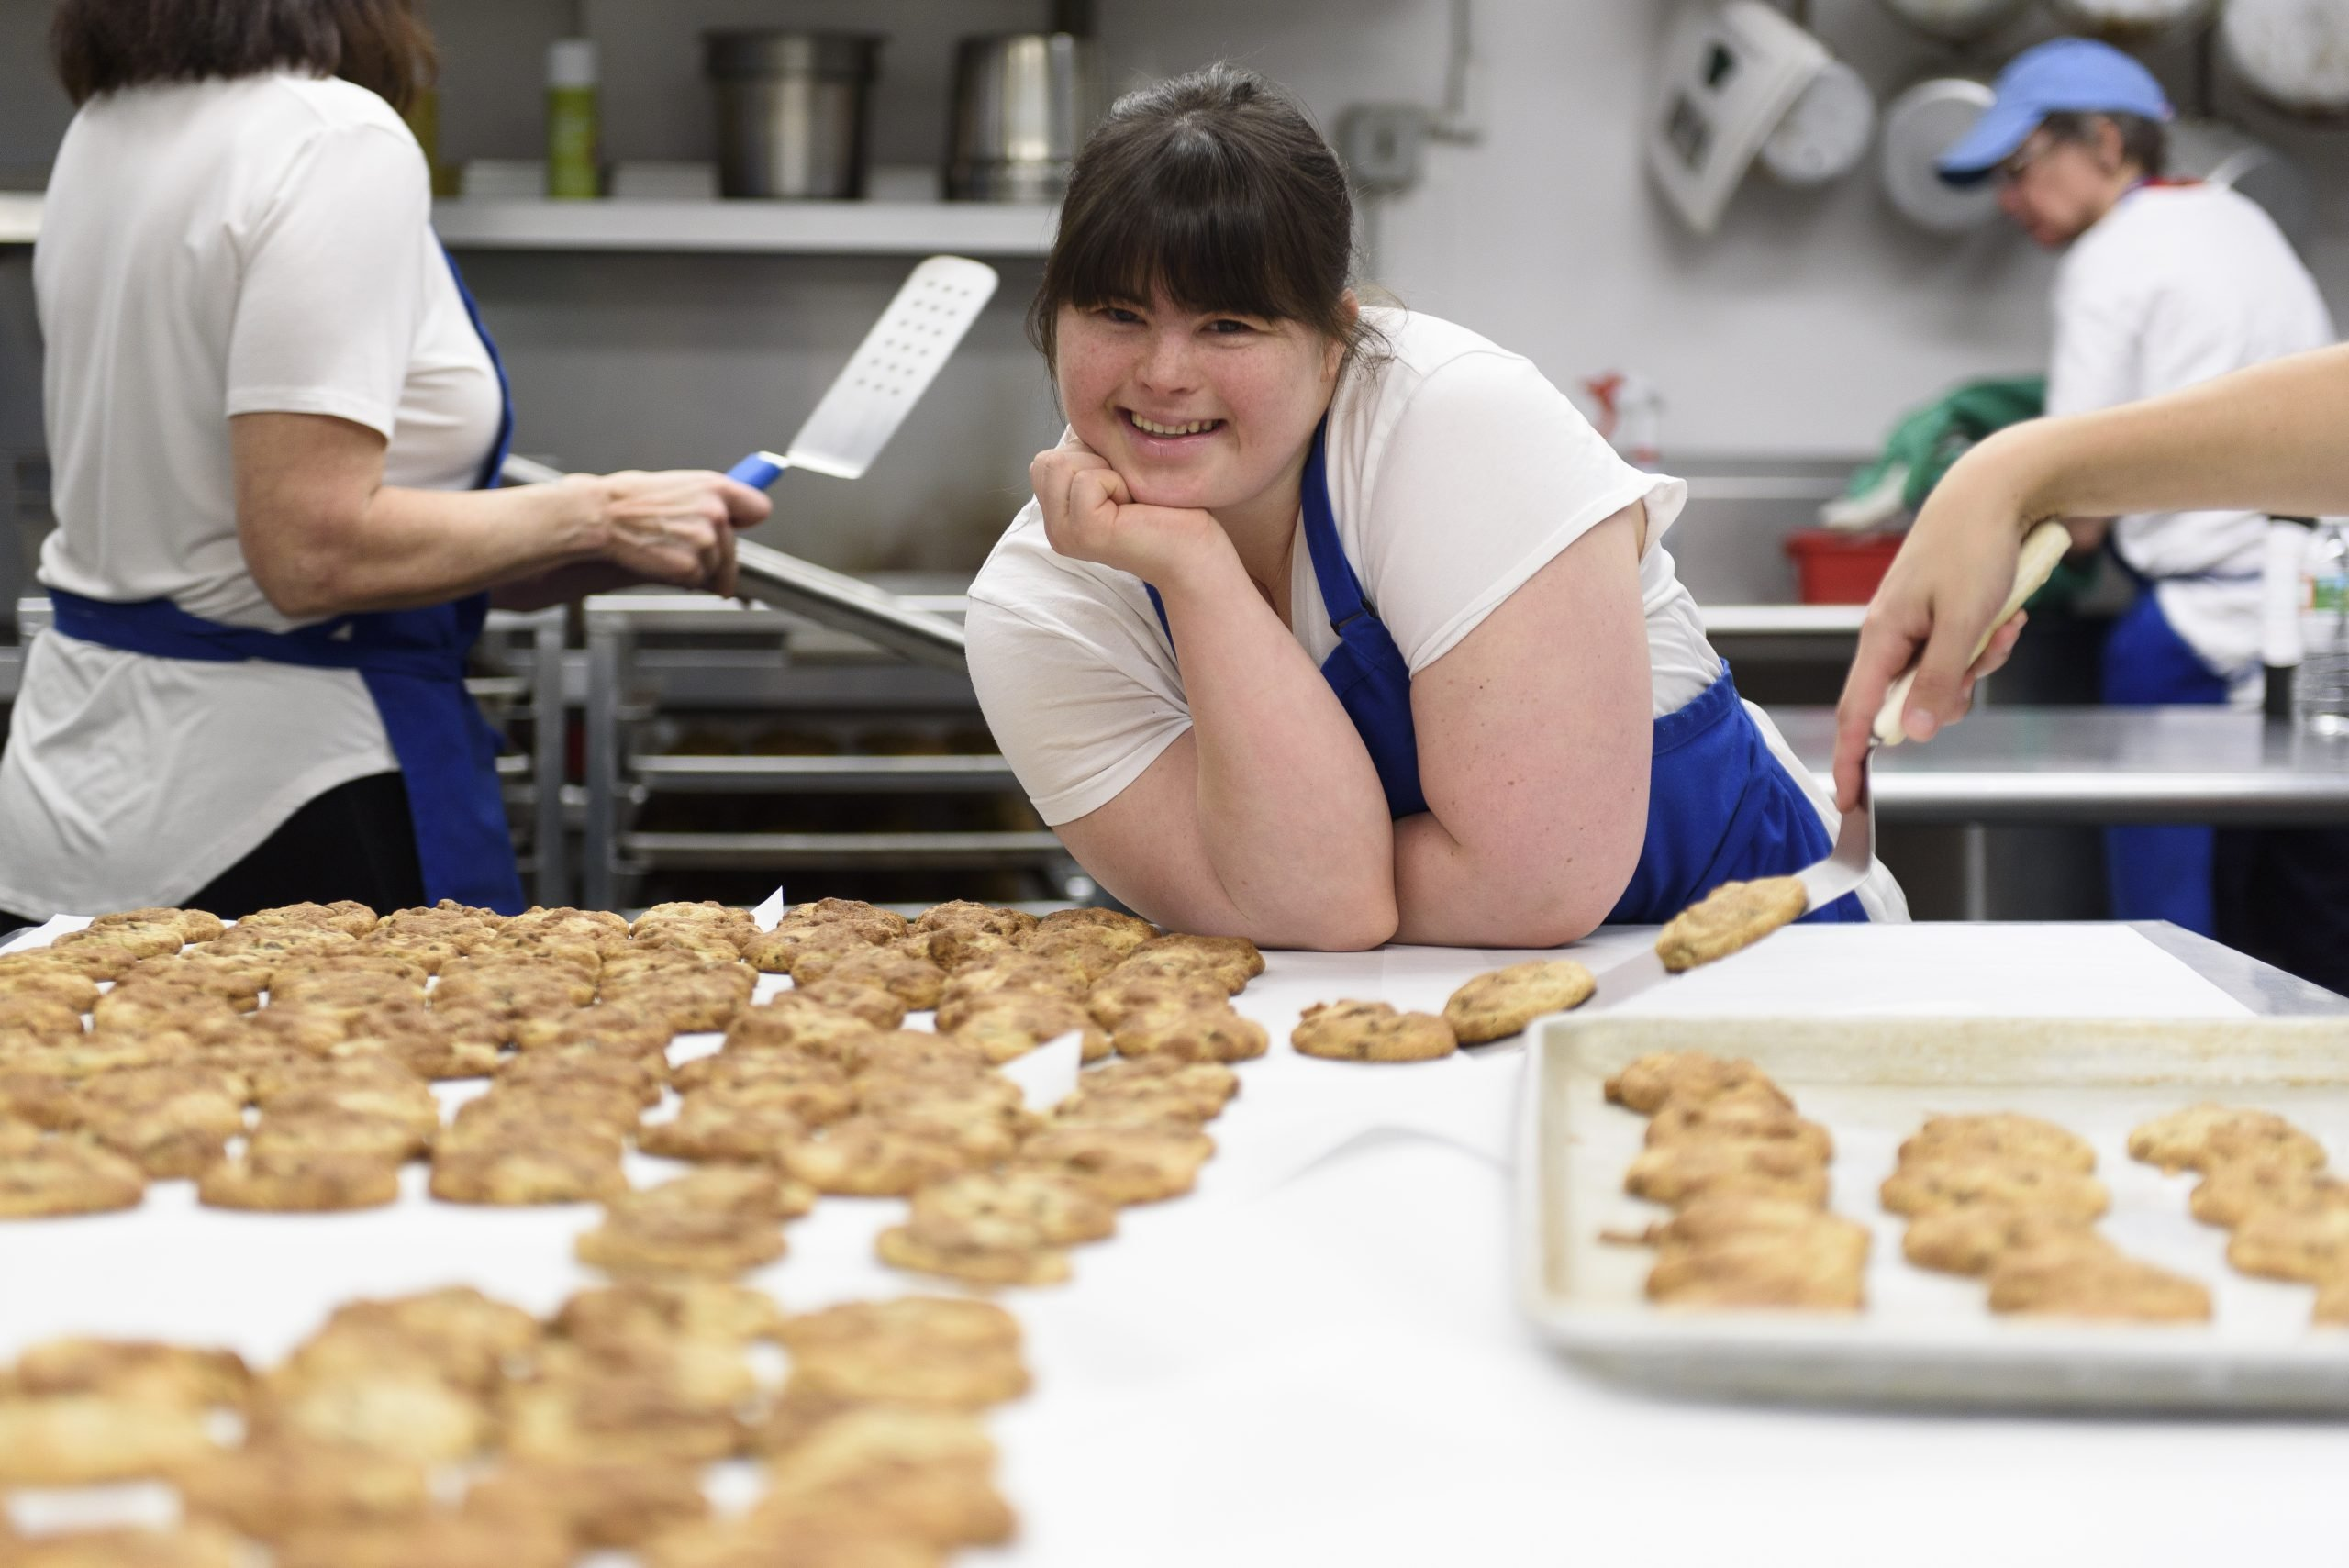 Collette Divitto at work. Workers are in the background and she is leaning on a table smiling, with cookies on the countertop in front of her